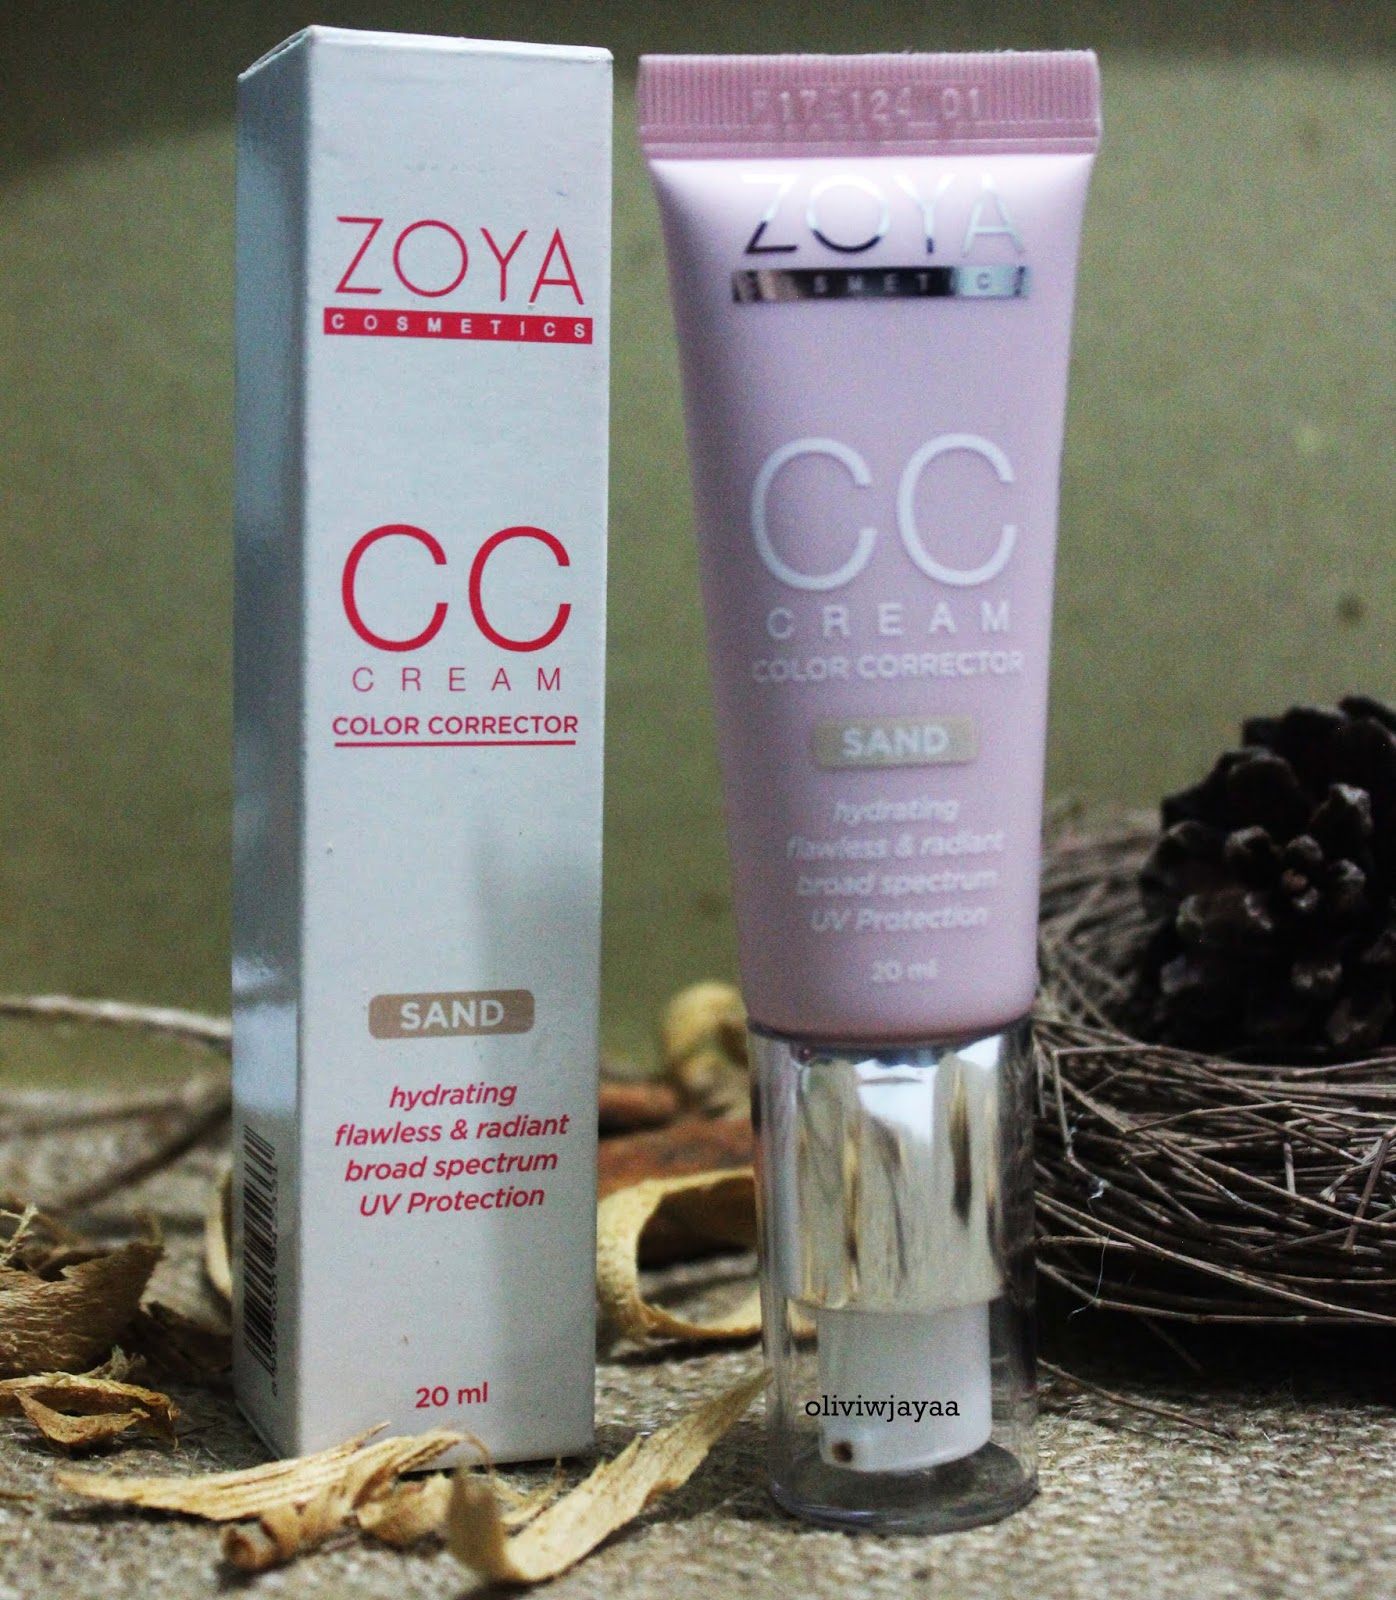 APA ITU CC CREAM REVIEW  CC CREAM ZOYA COSMETICS